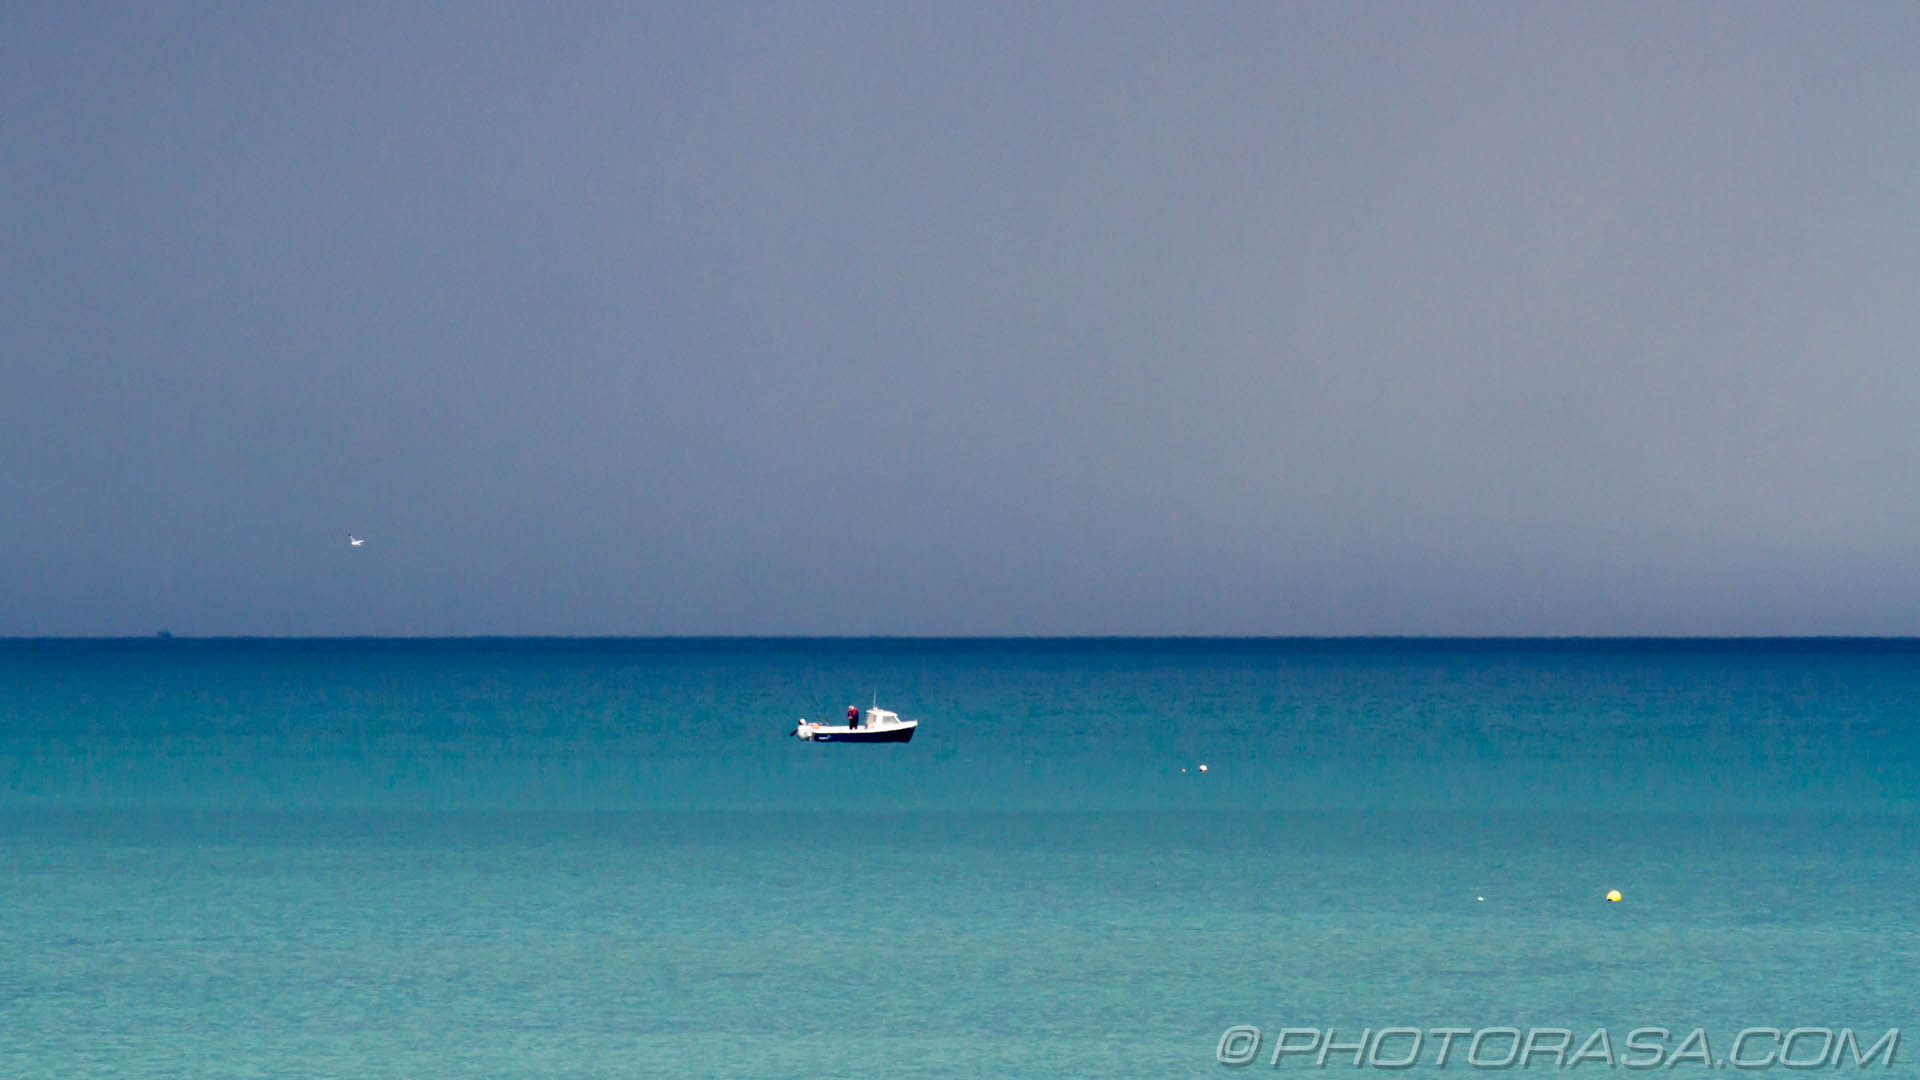 http://photorasa.com/sea-lyme-regis/boat-and-stormy-blue-sea/